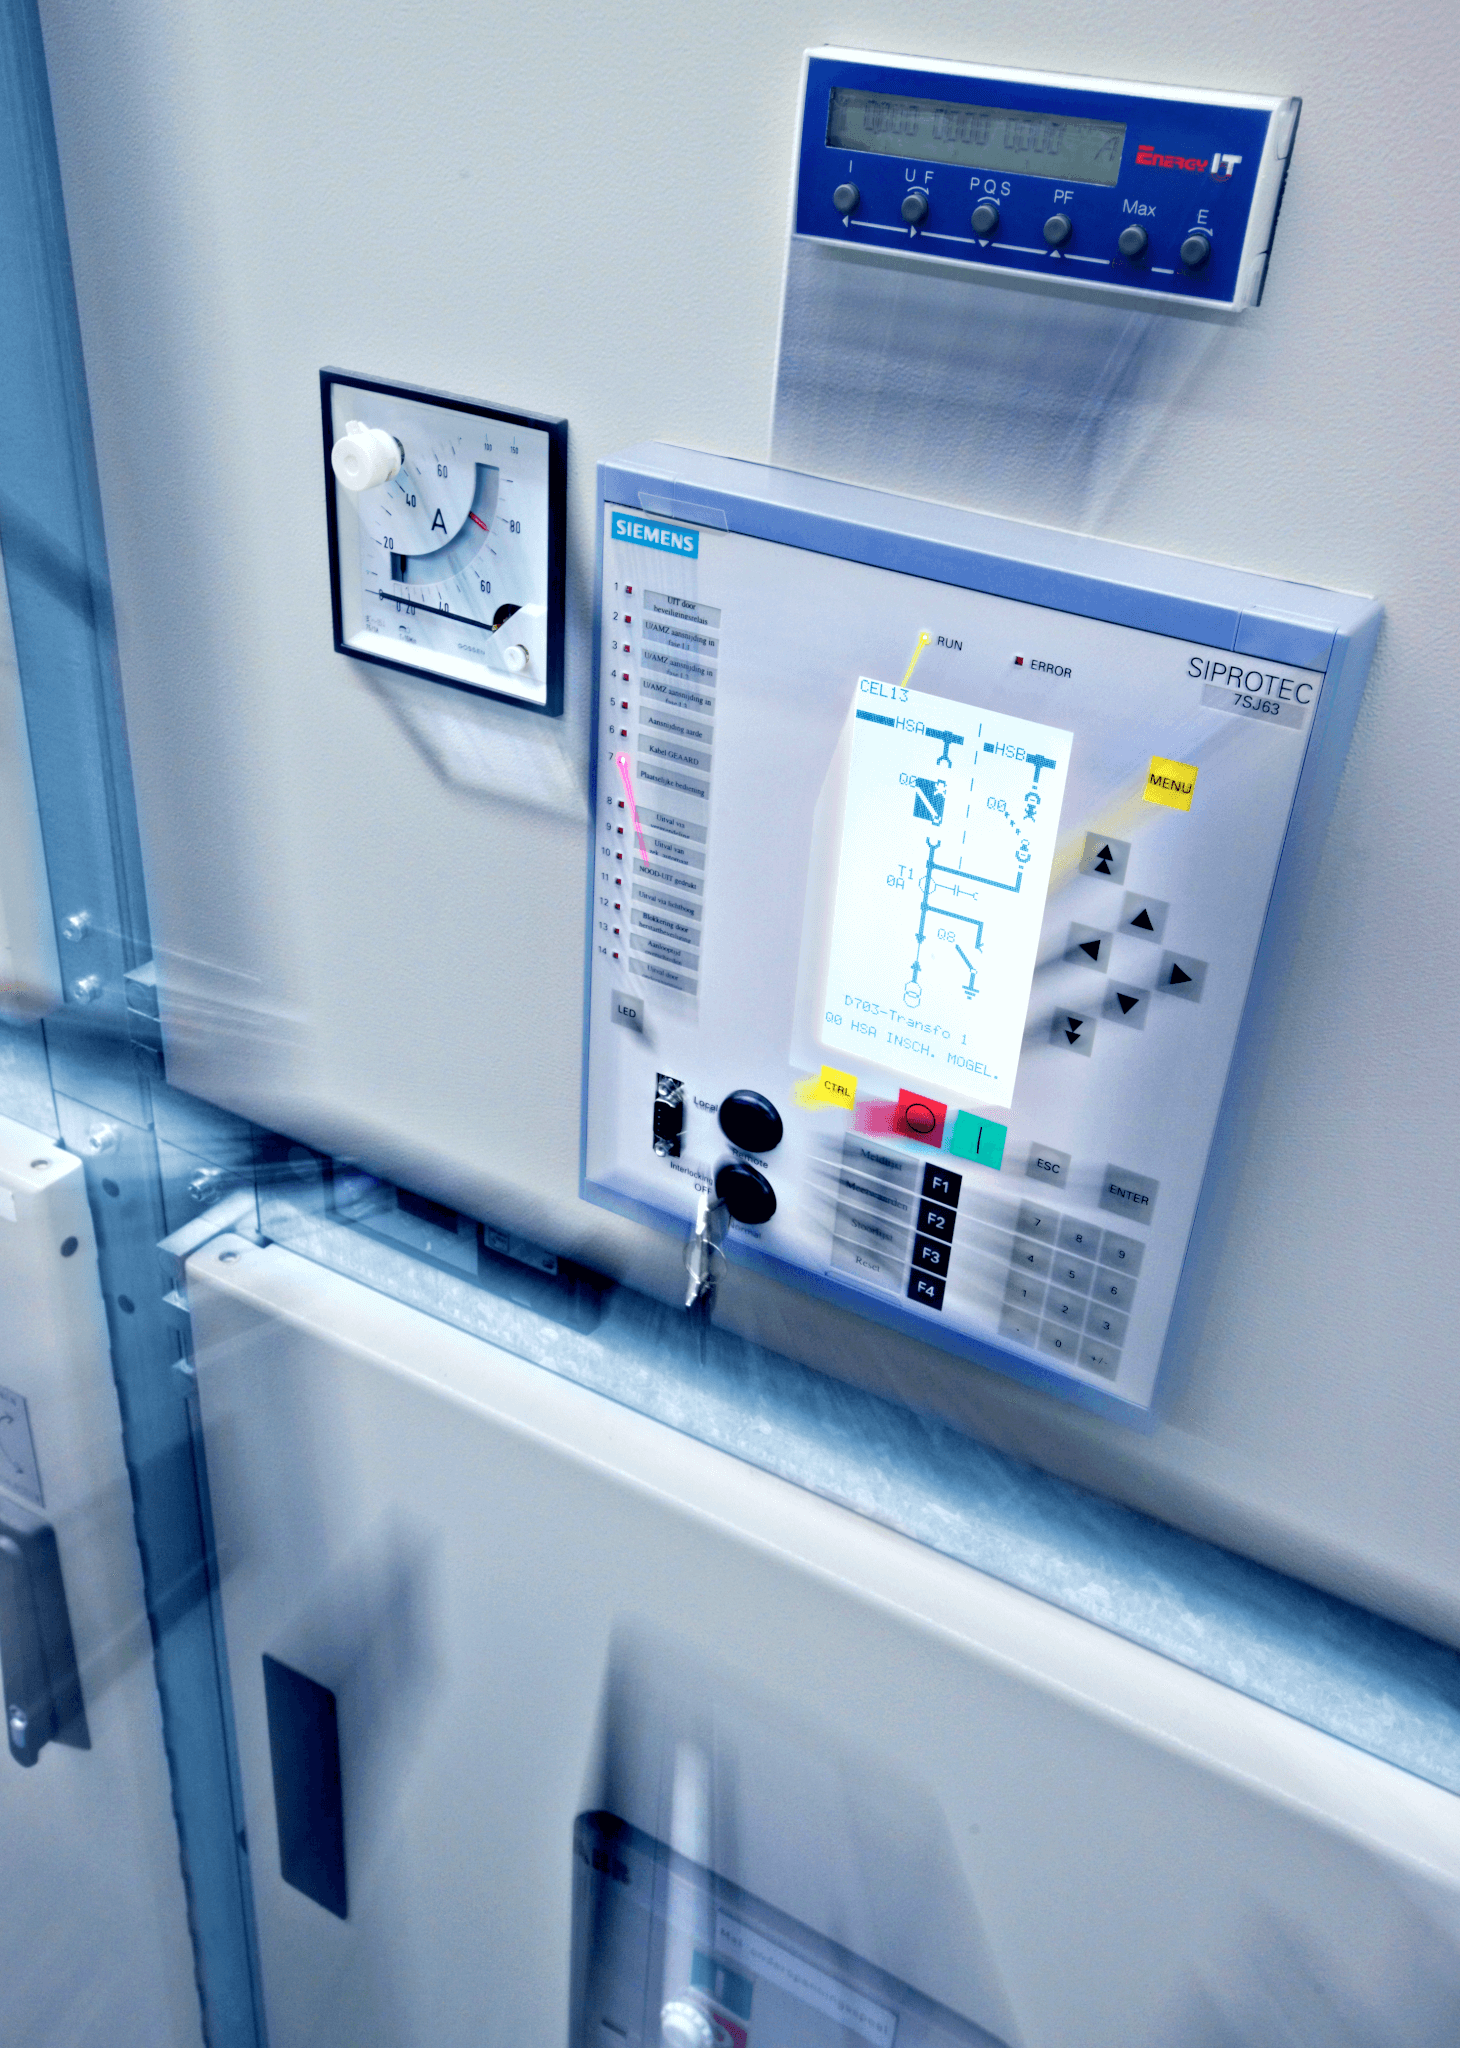 Protect, Control and Monitor your key assets in the power network